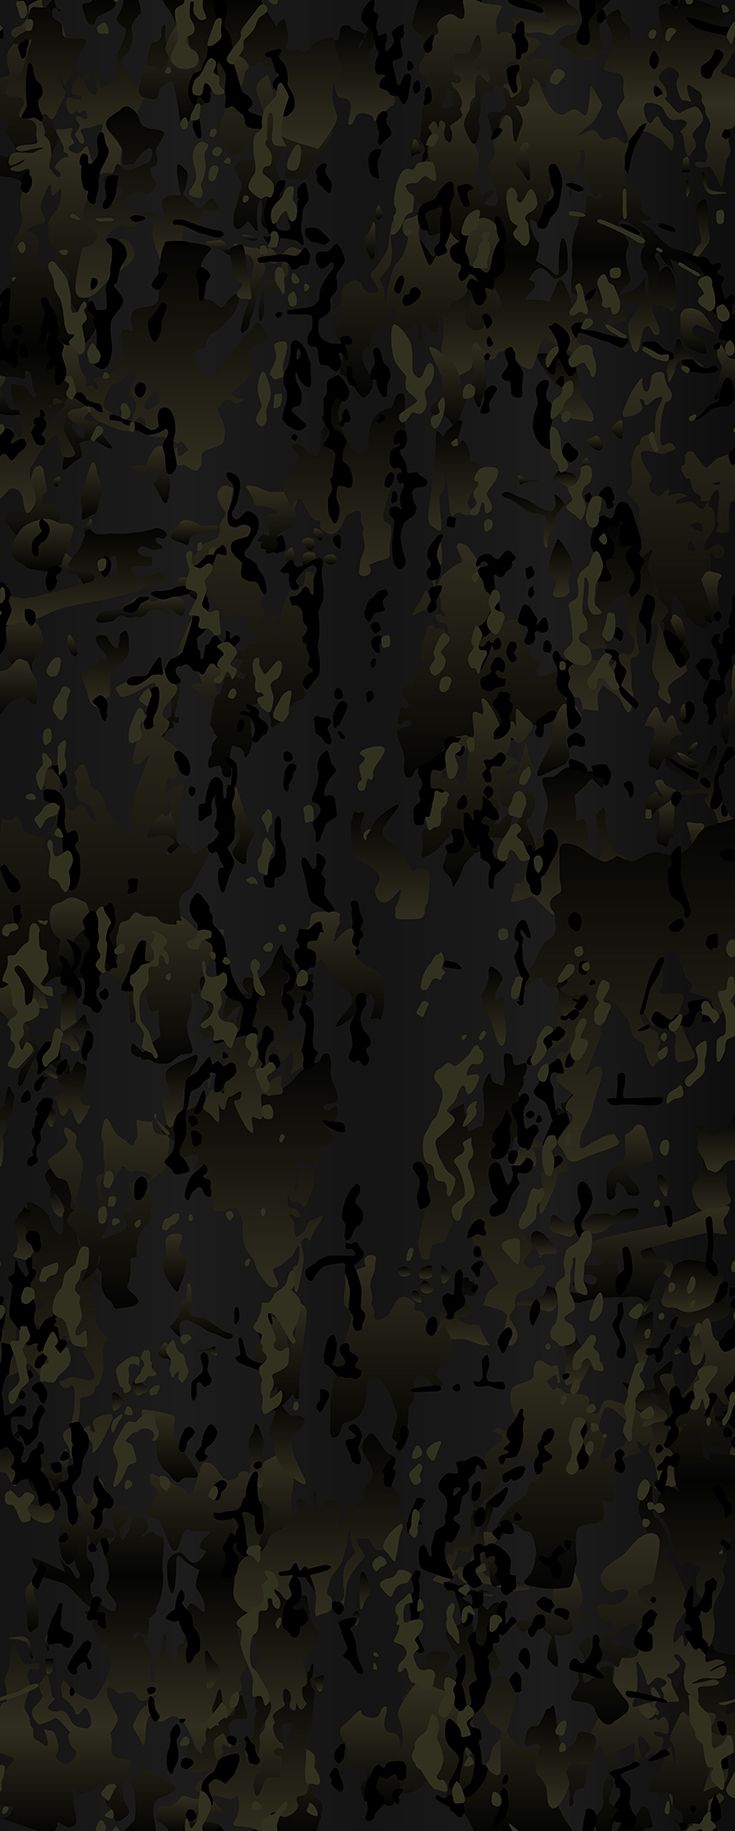 Original Multicam Black Vector Camouflage Pattern For Printing